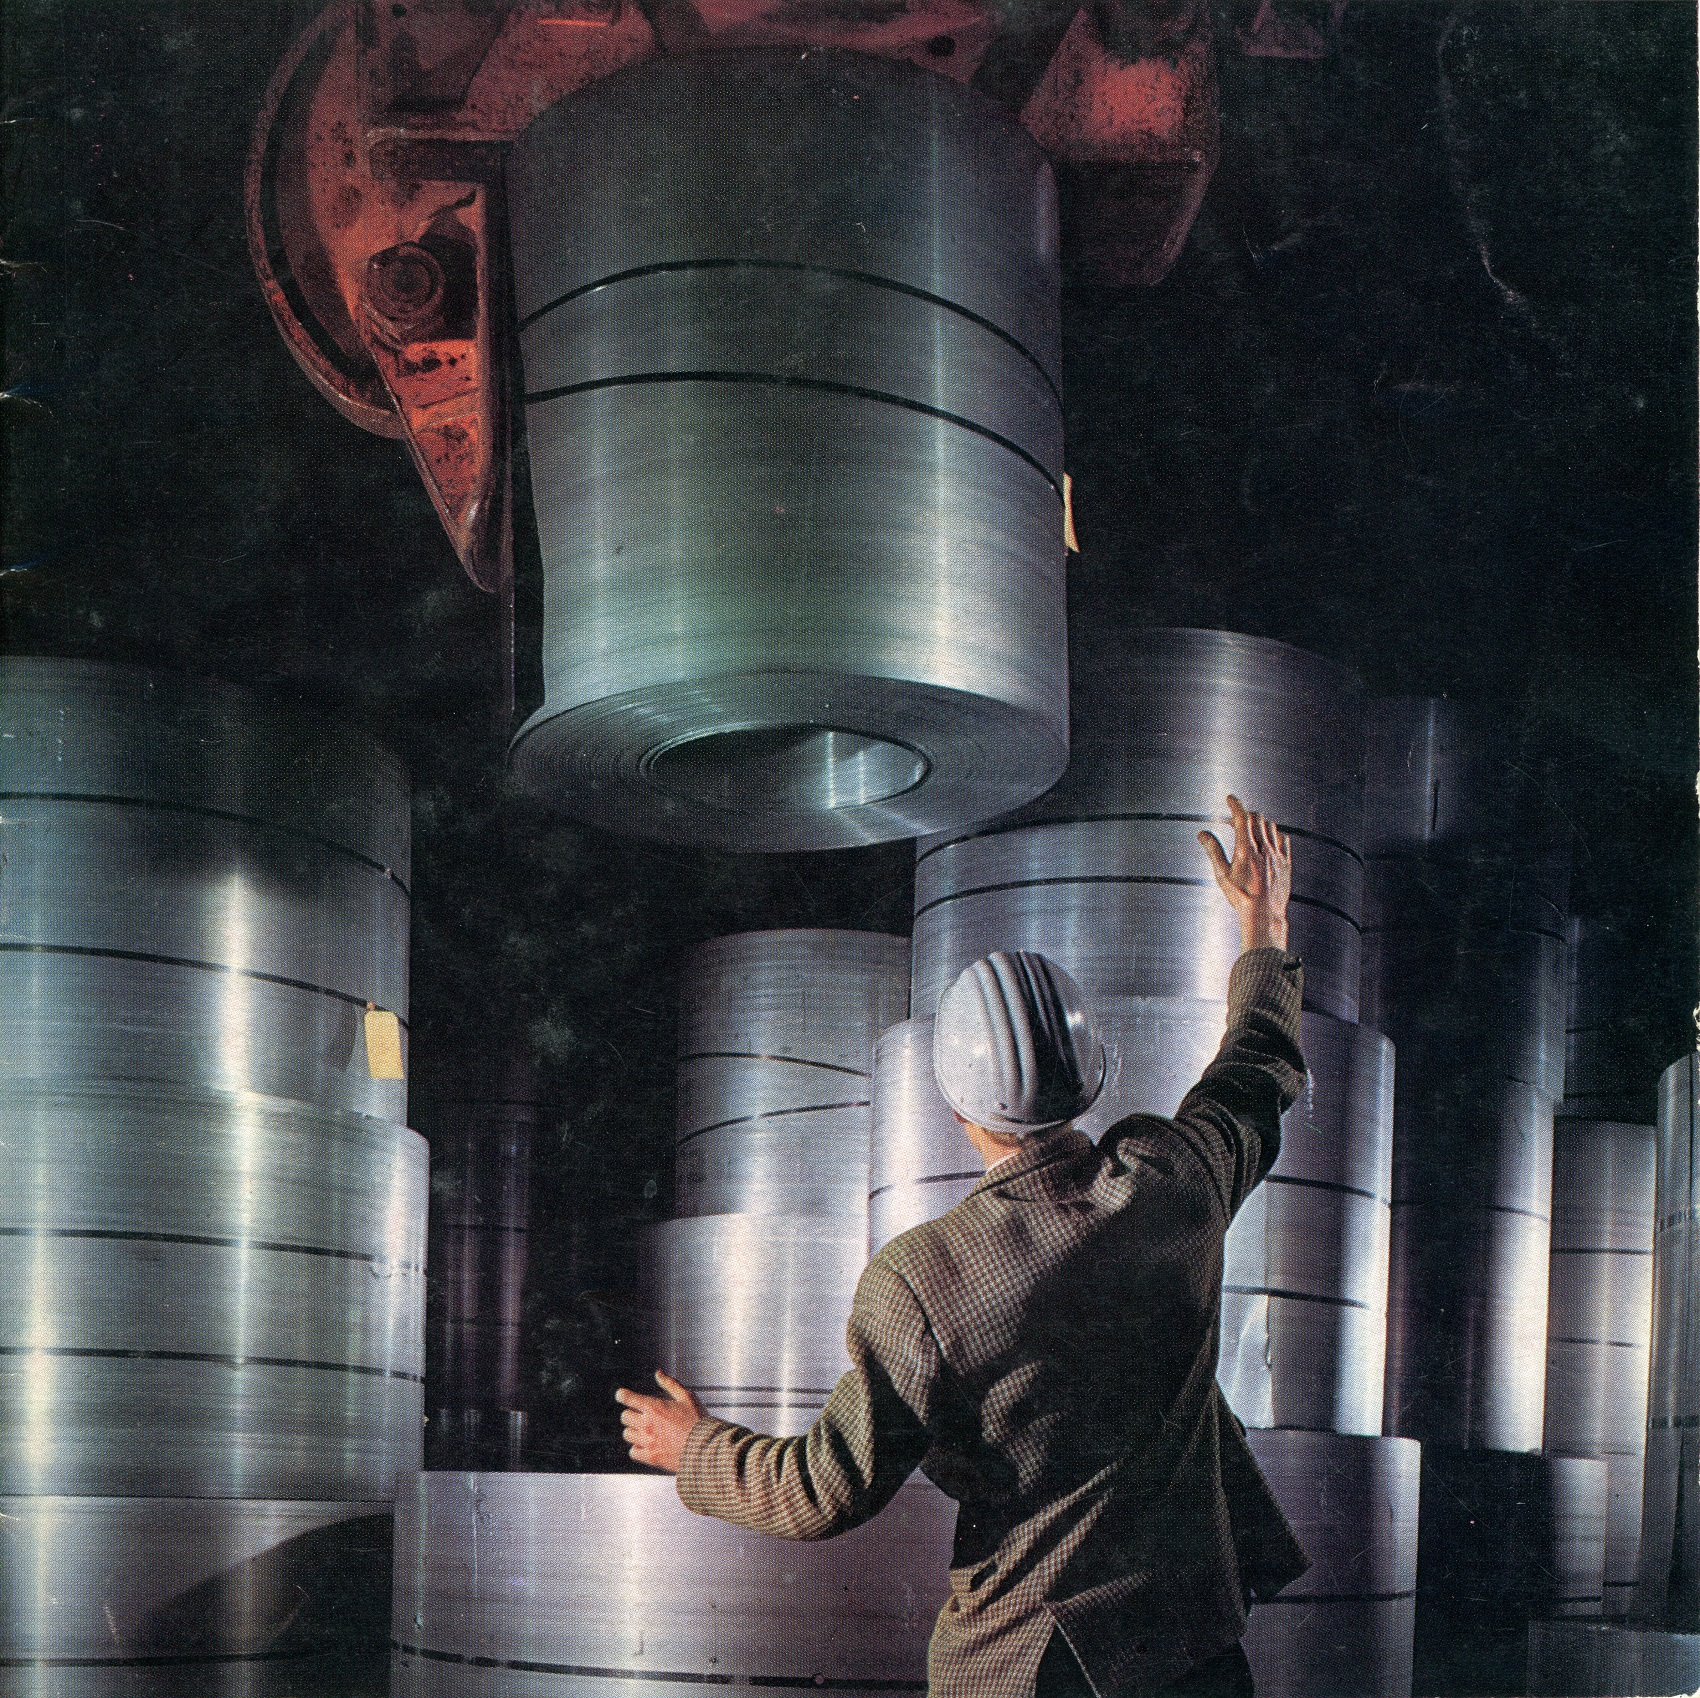 This uncredited photograph of steel coils being stacked was a cover image for Colvilles Magazine in 1962.